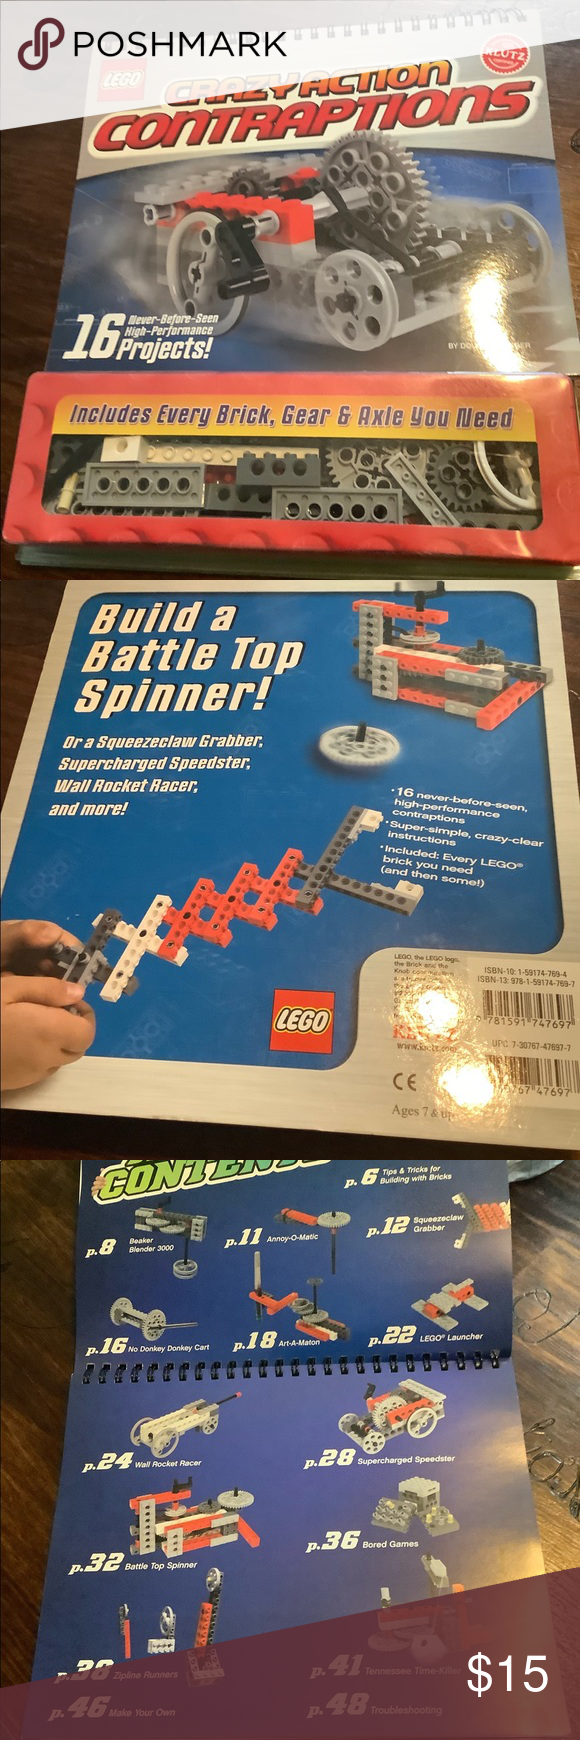 Klutz Lego Crazy Action Contraptions Book Legos Klutz Lego Crazy Action Contraptions Book And All Pieces New Lego Other In 2020 Lego For Kids Lego Legos